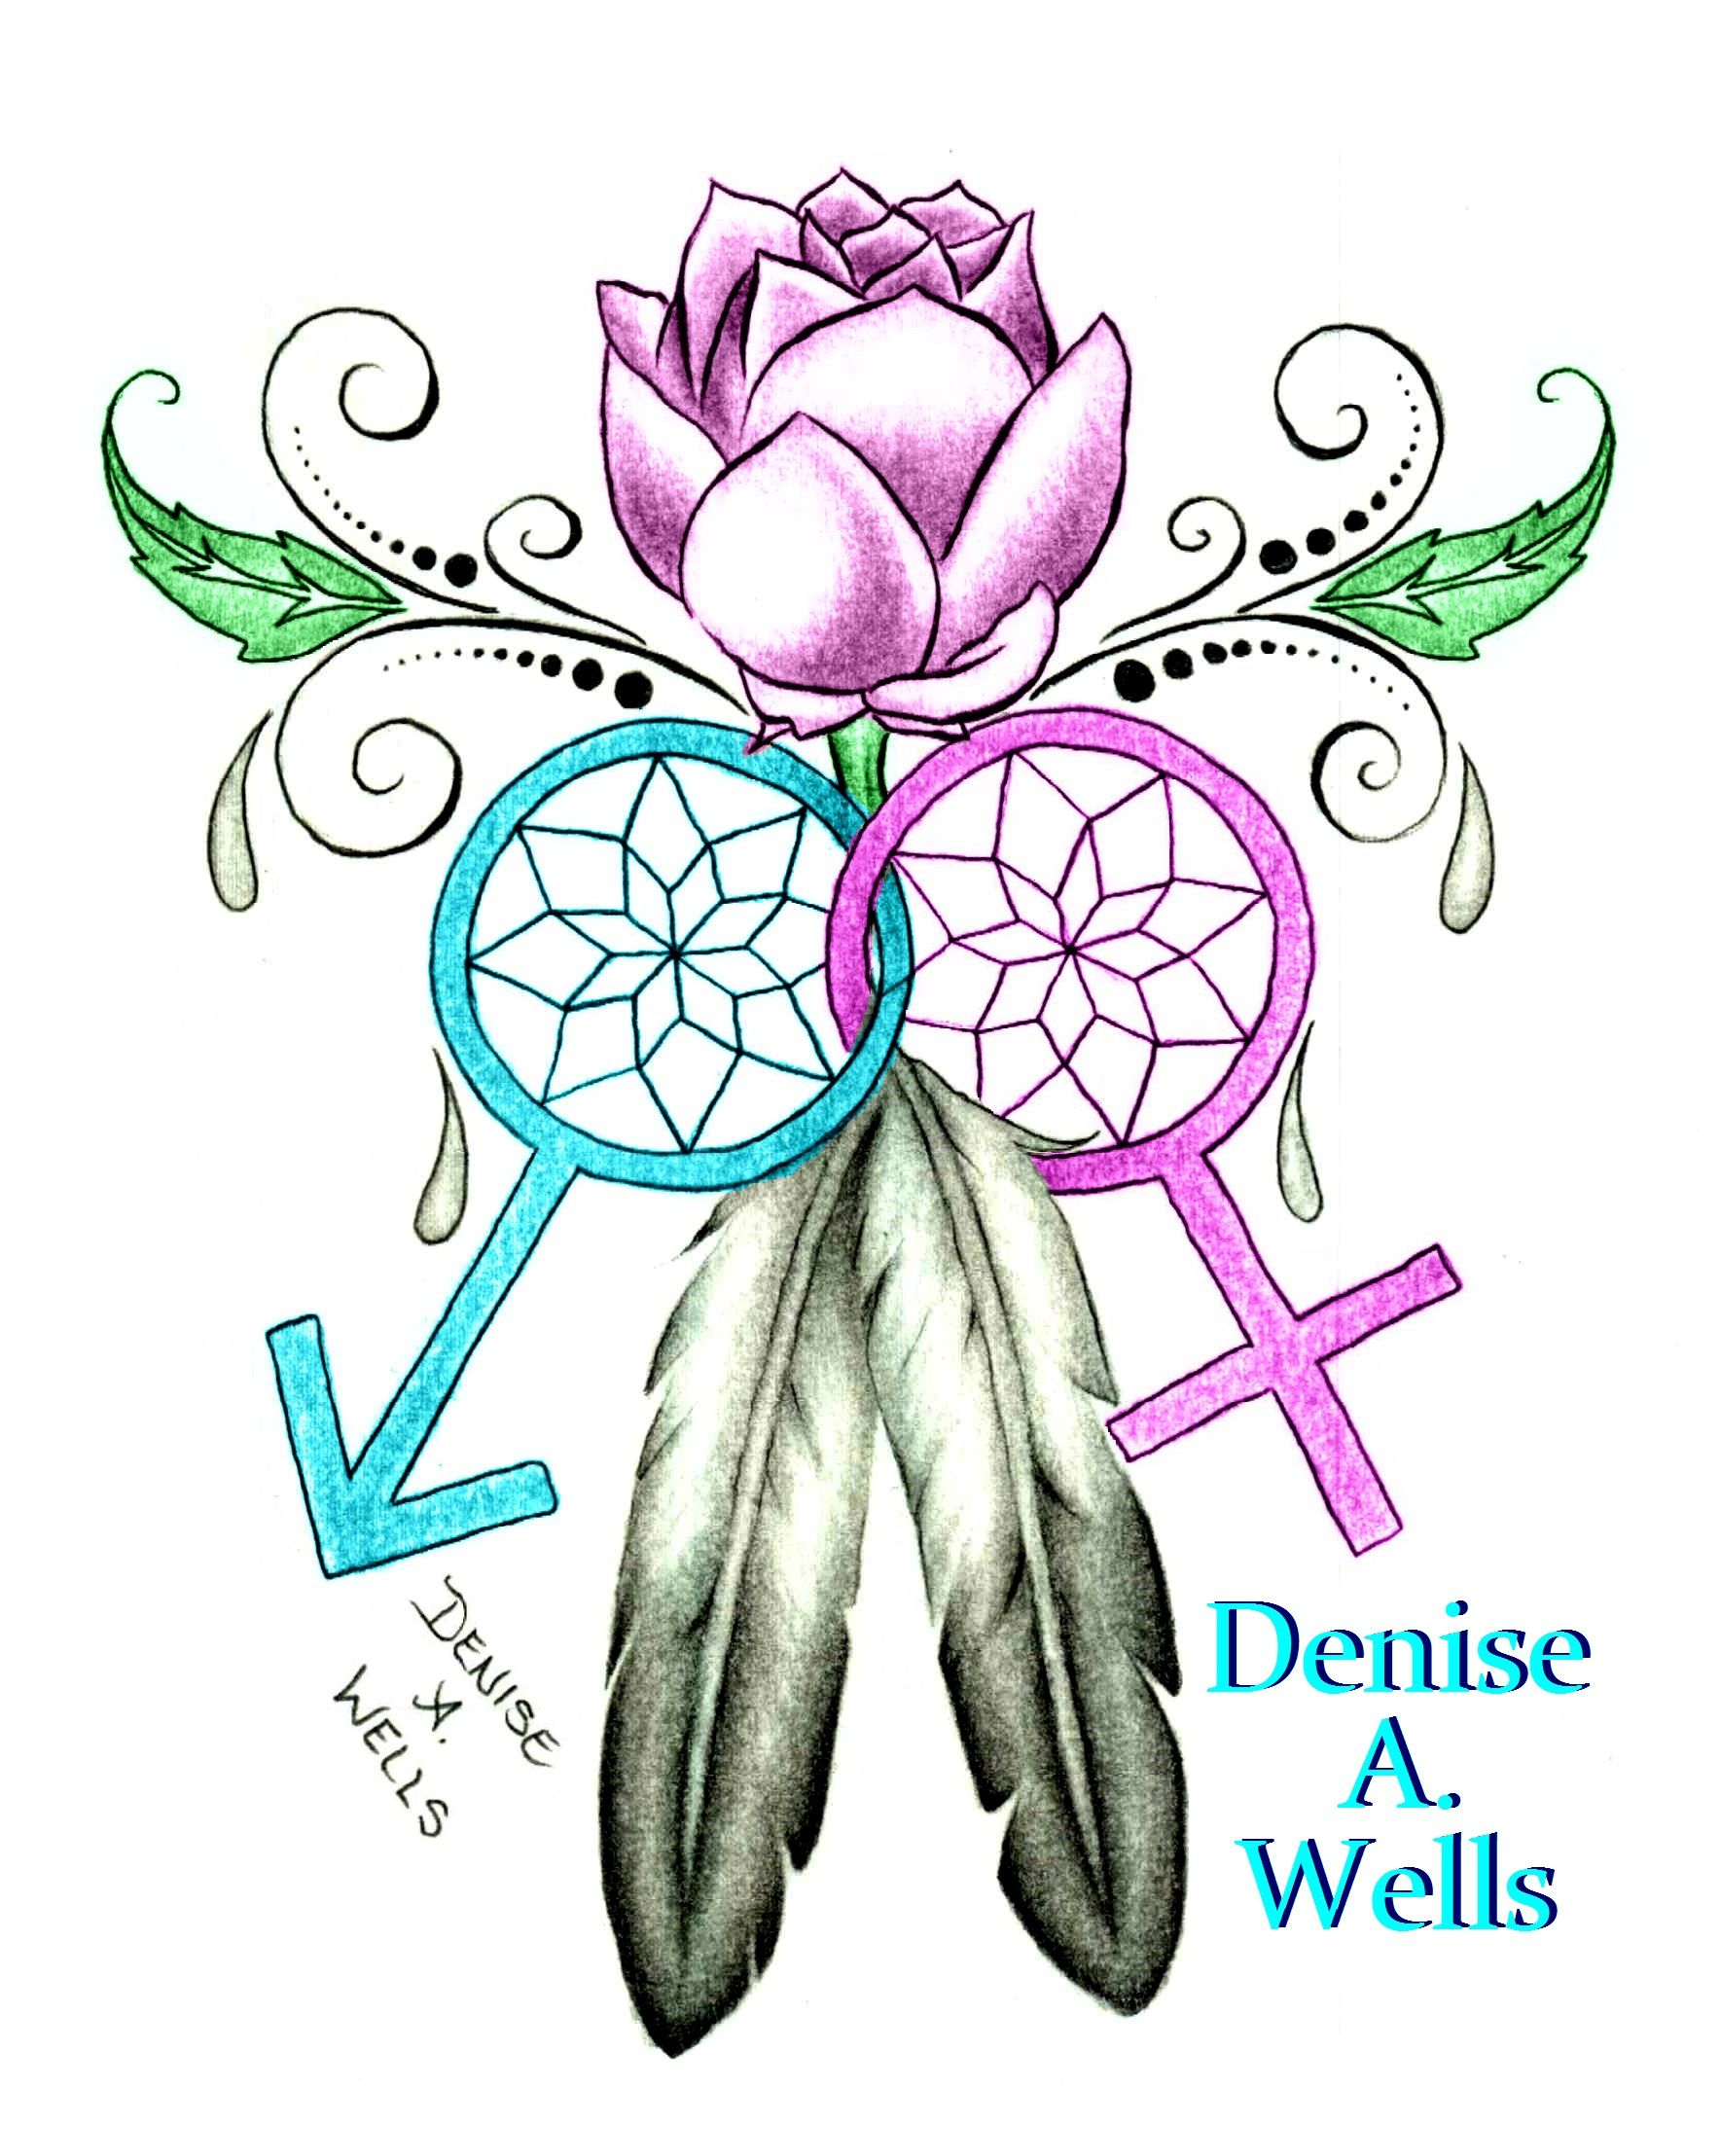 Dream Catcher Tattoo Design By Denise A Wells Including Lily Flower